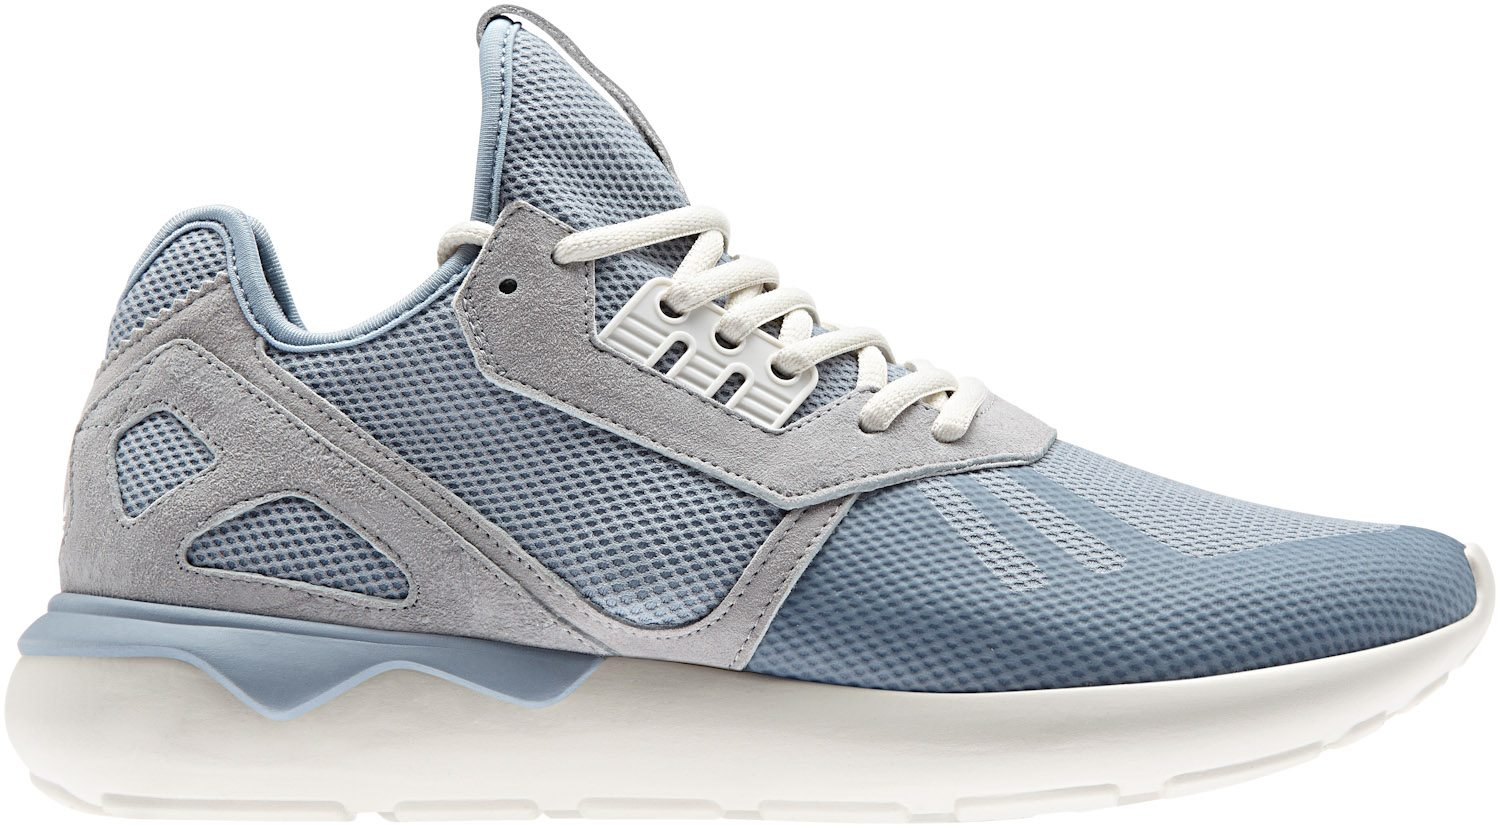 adidas Originals Tubular Sea to Sky Pack 2